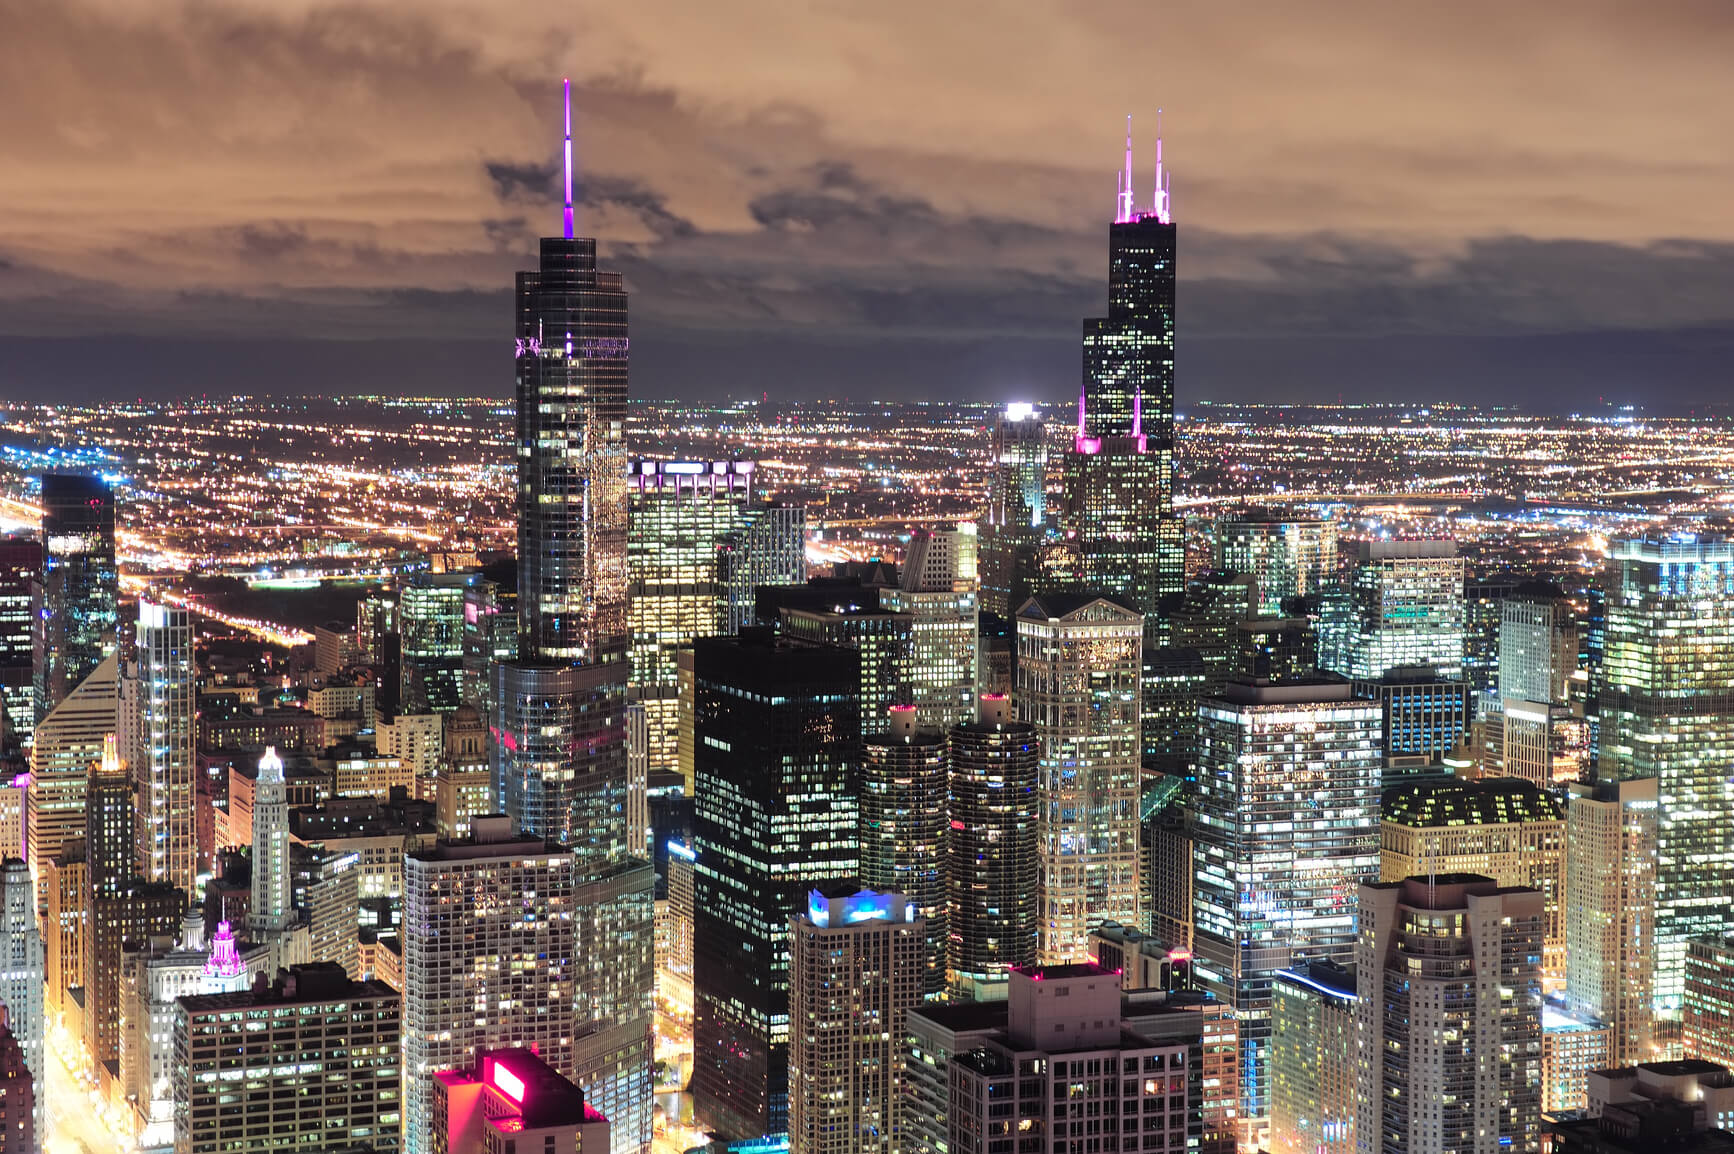 Hong Kong to Chicago, USA for only $323 USD roundtrip (Sep-Oct dates)